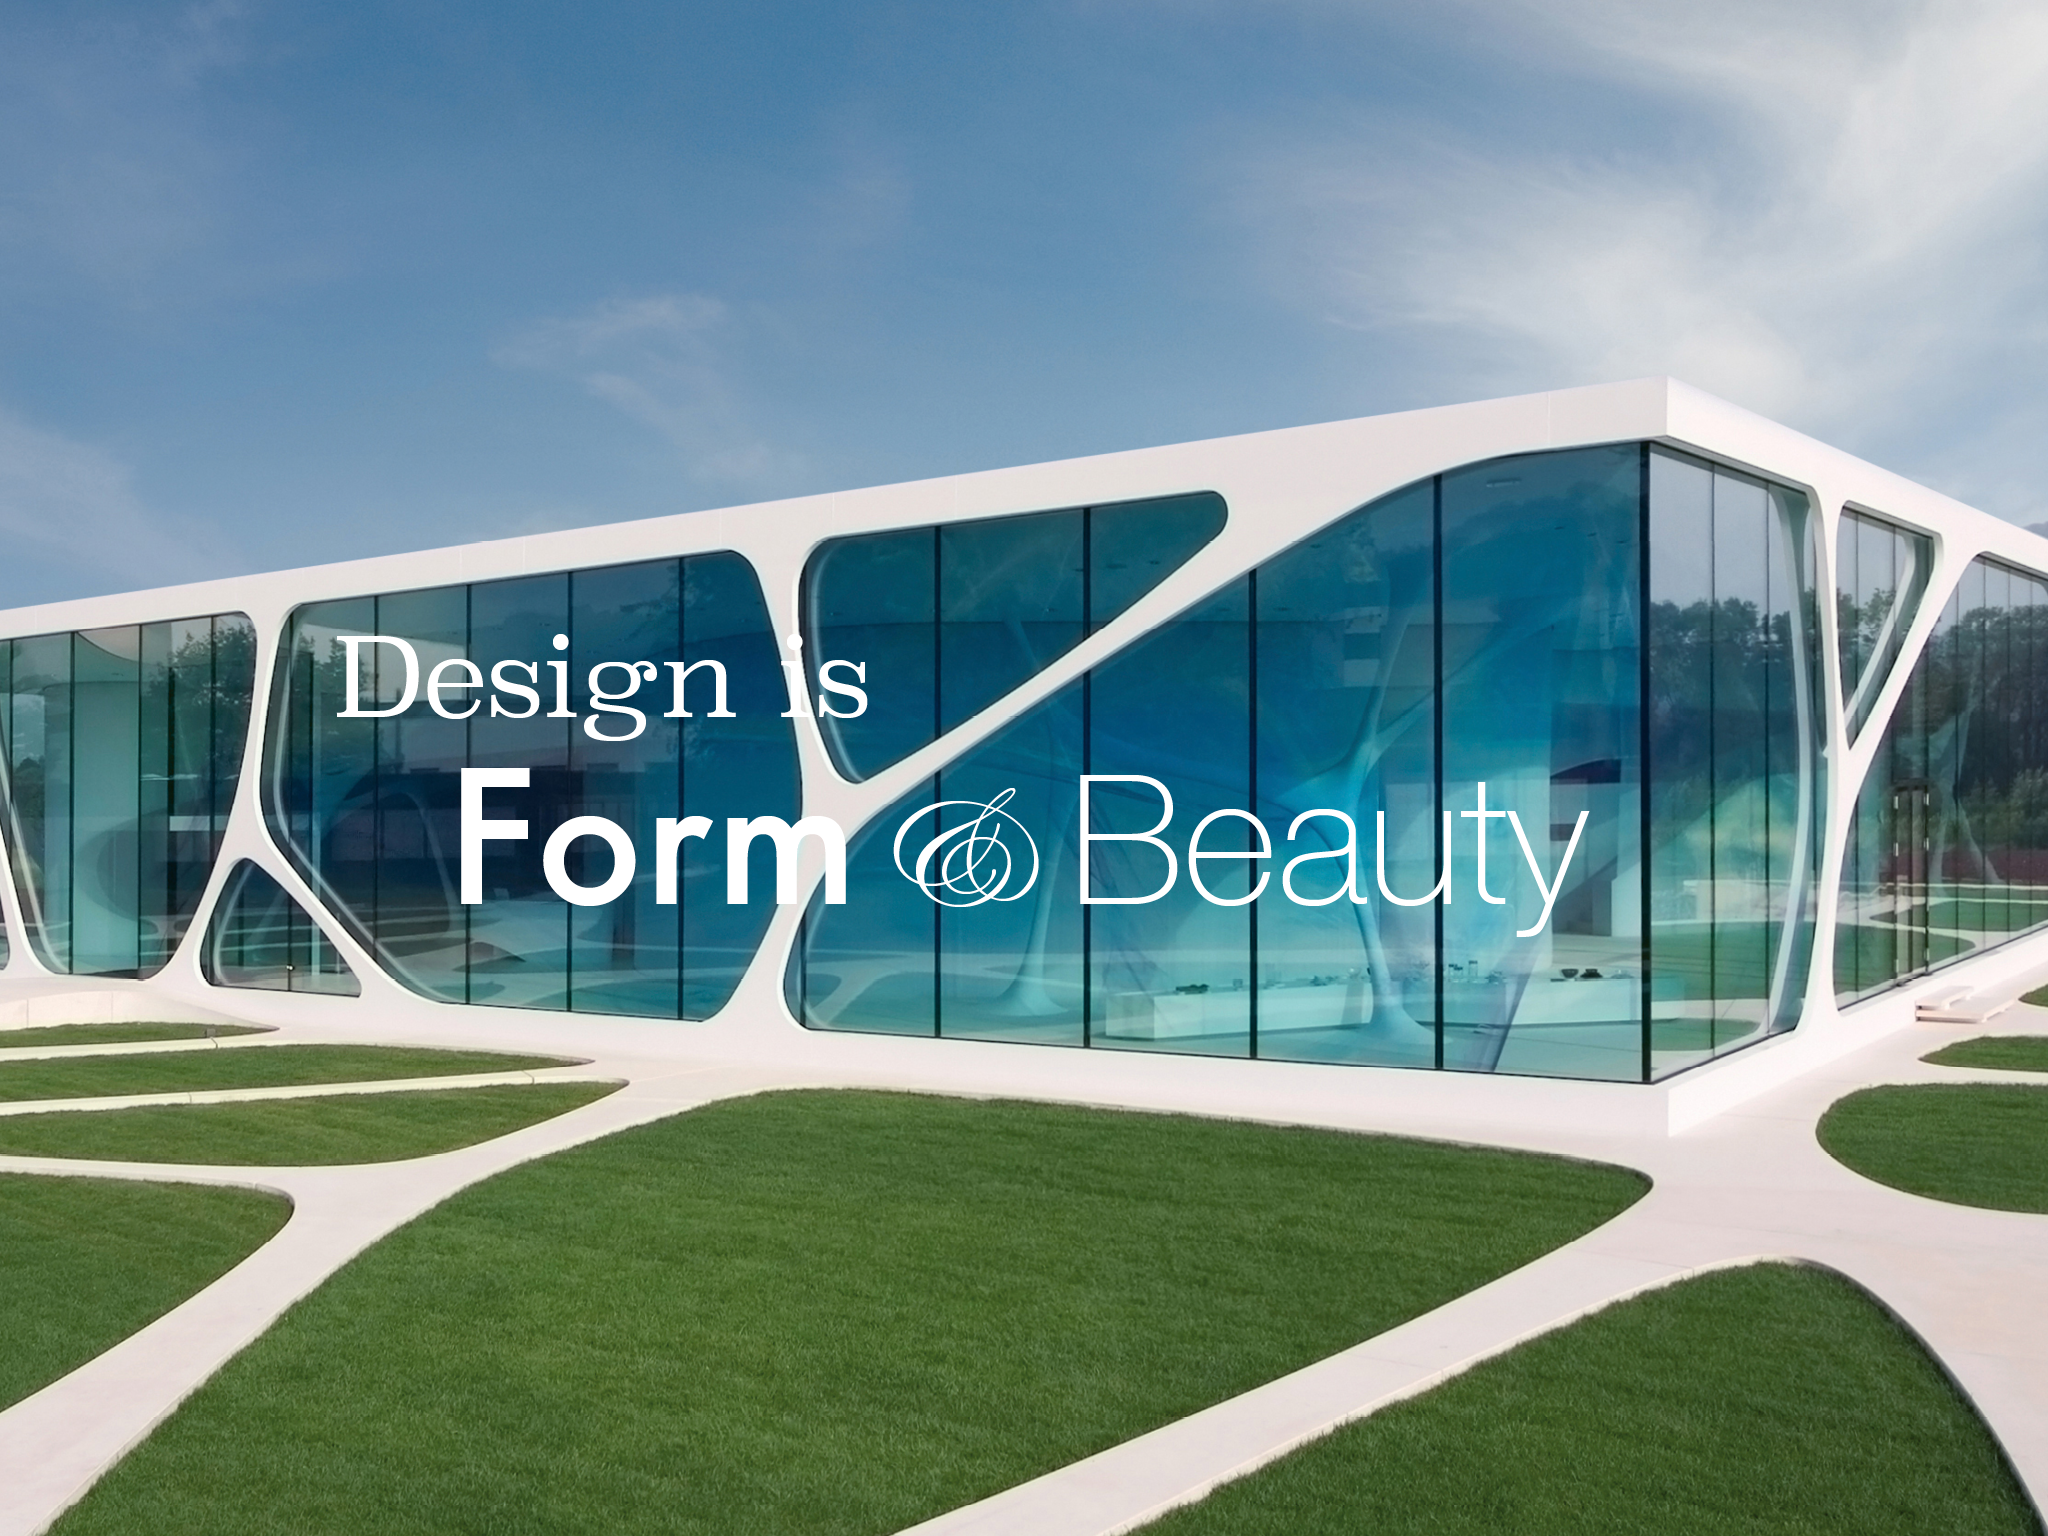 Design is form and beauty7